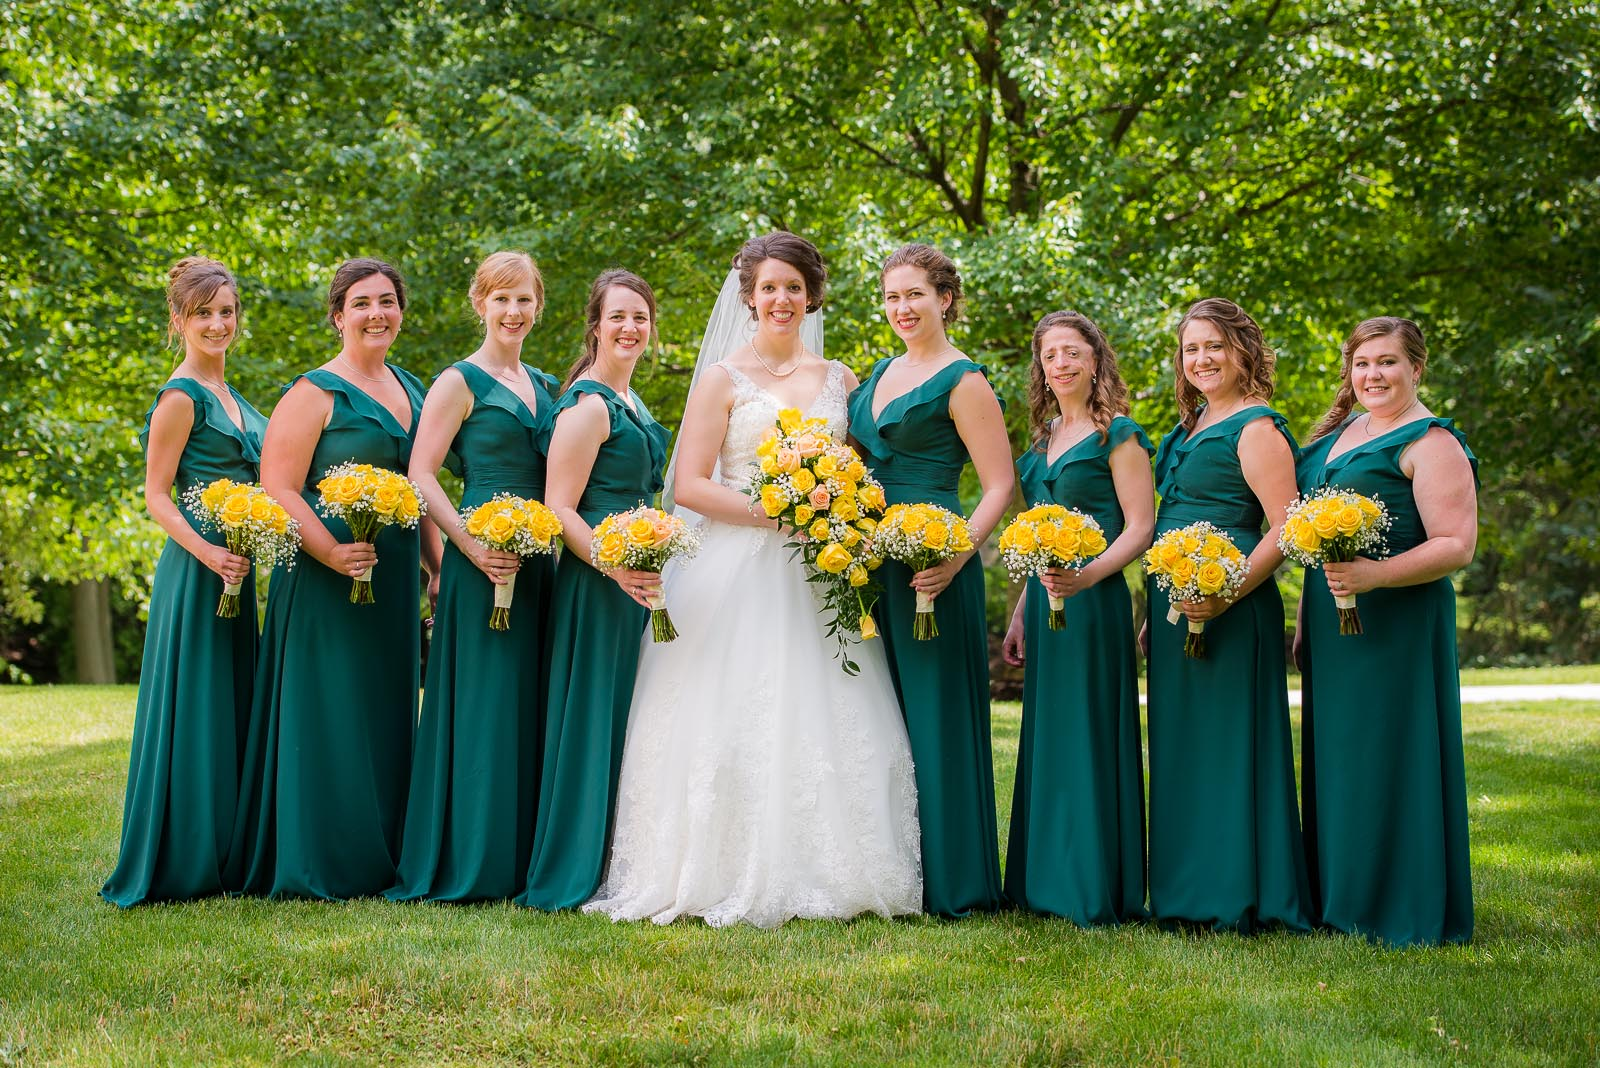 Eric_and_Christy_Photography_Blog_Wedding_Kelly_Michael-20